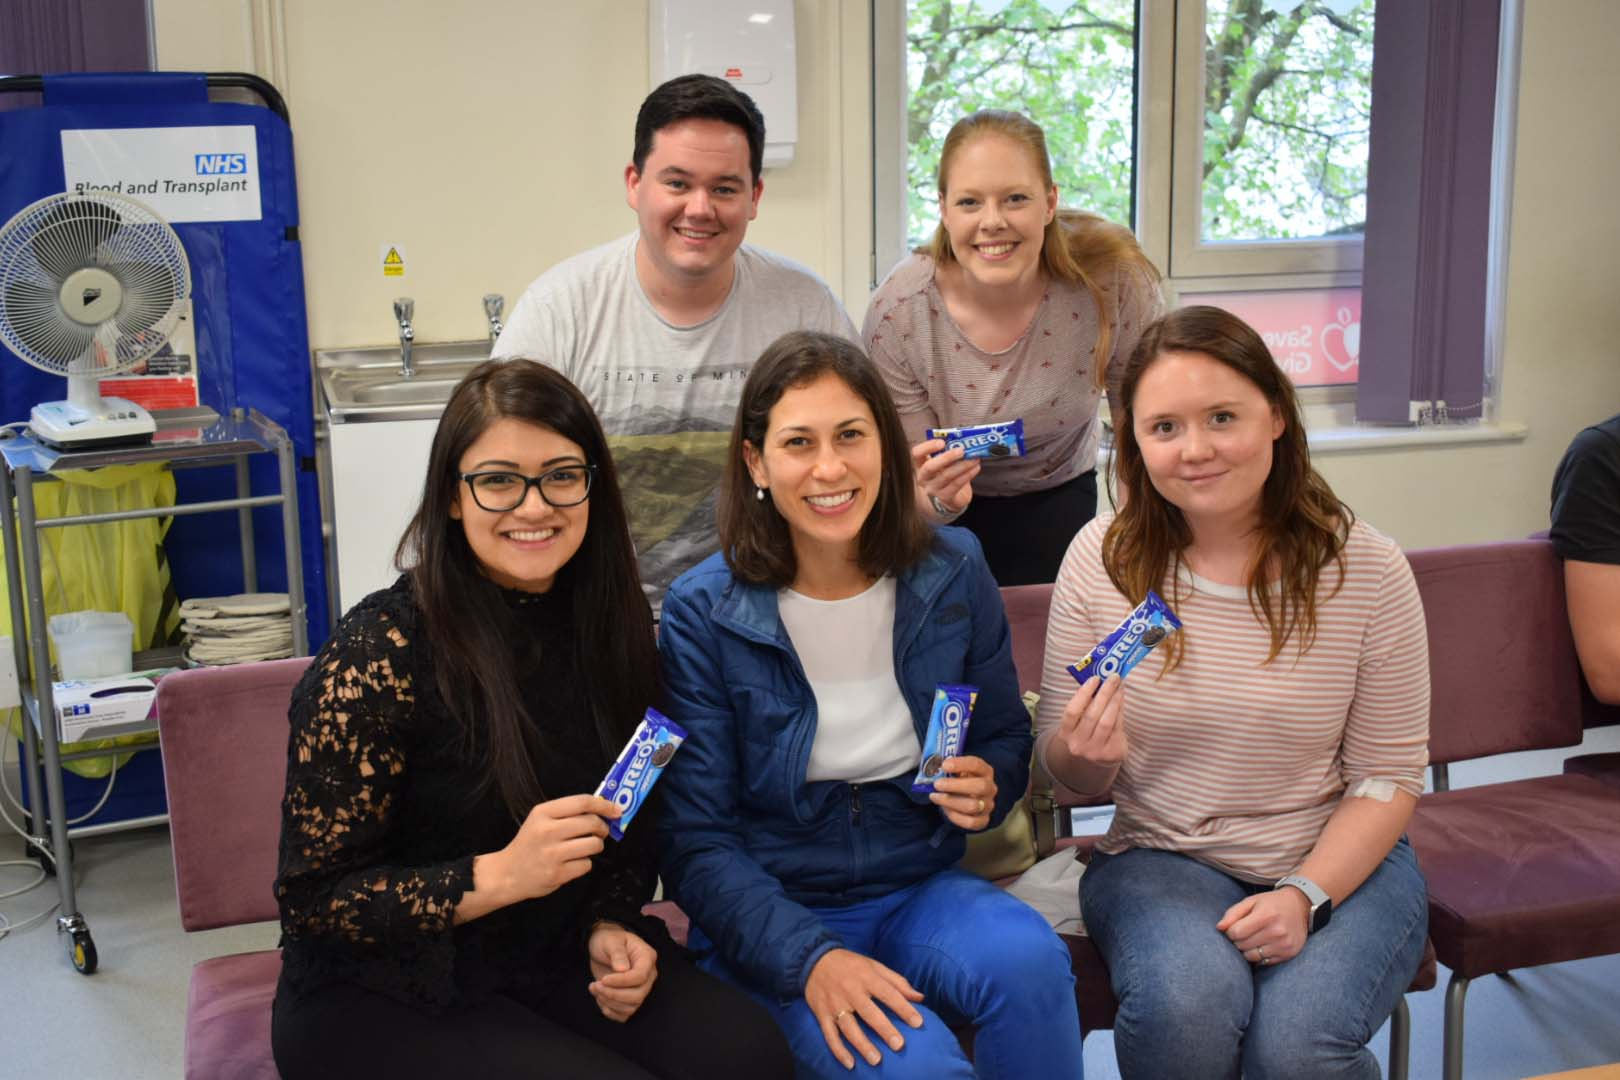 The Cadbury donors enjoy a biscuit after giving blood